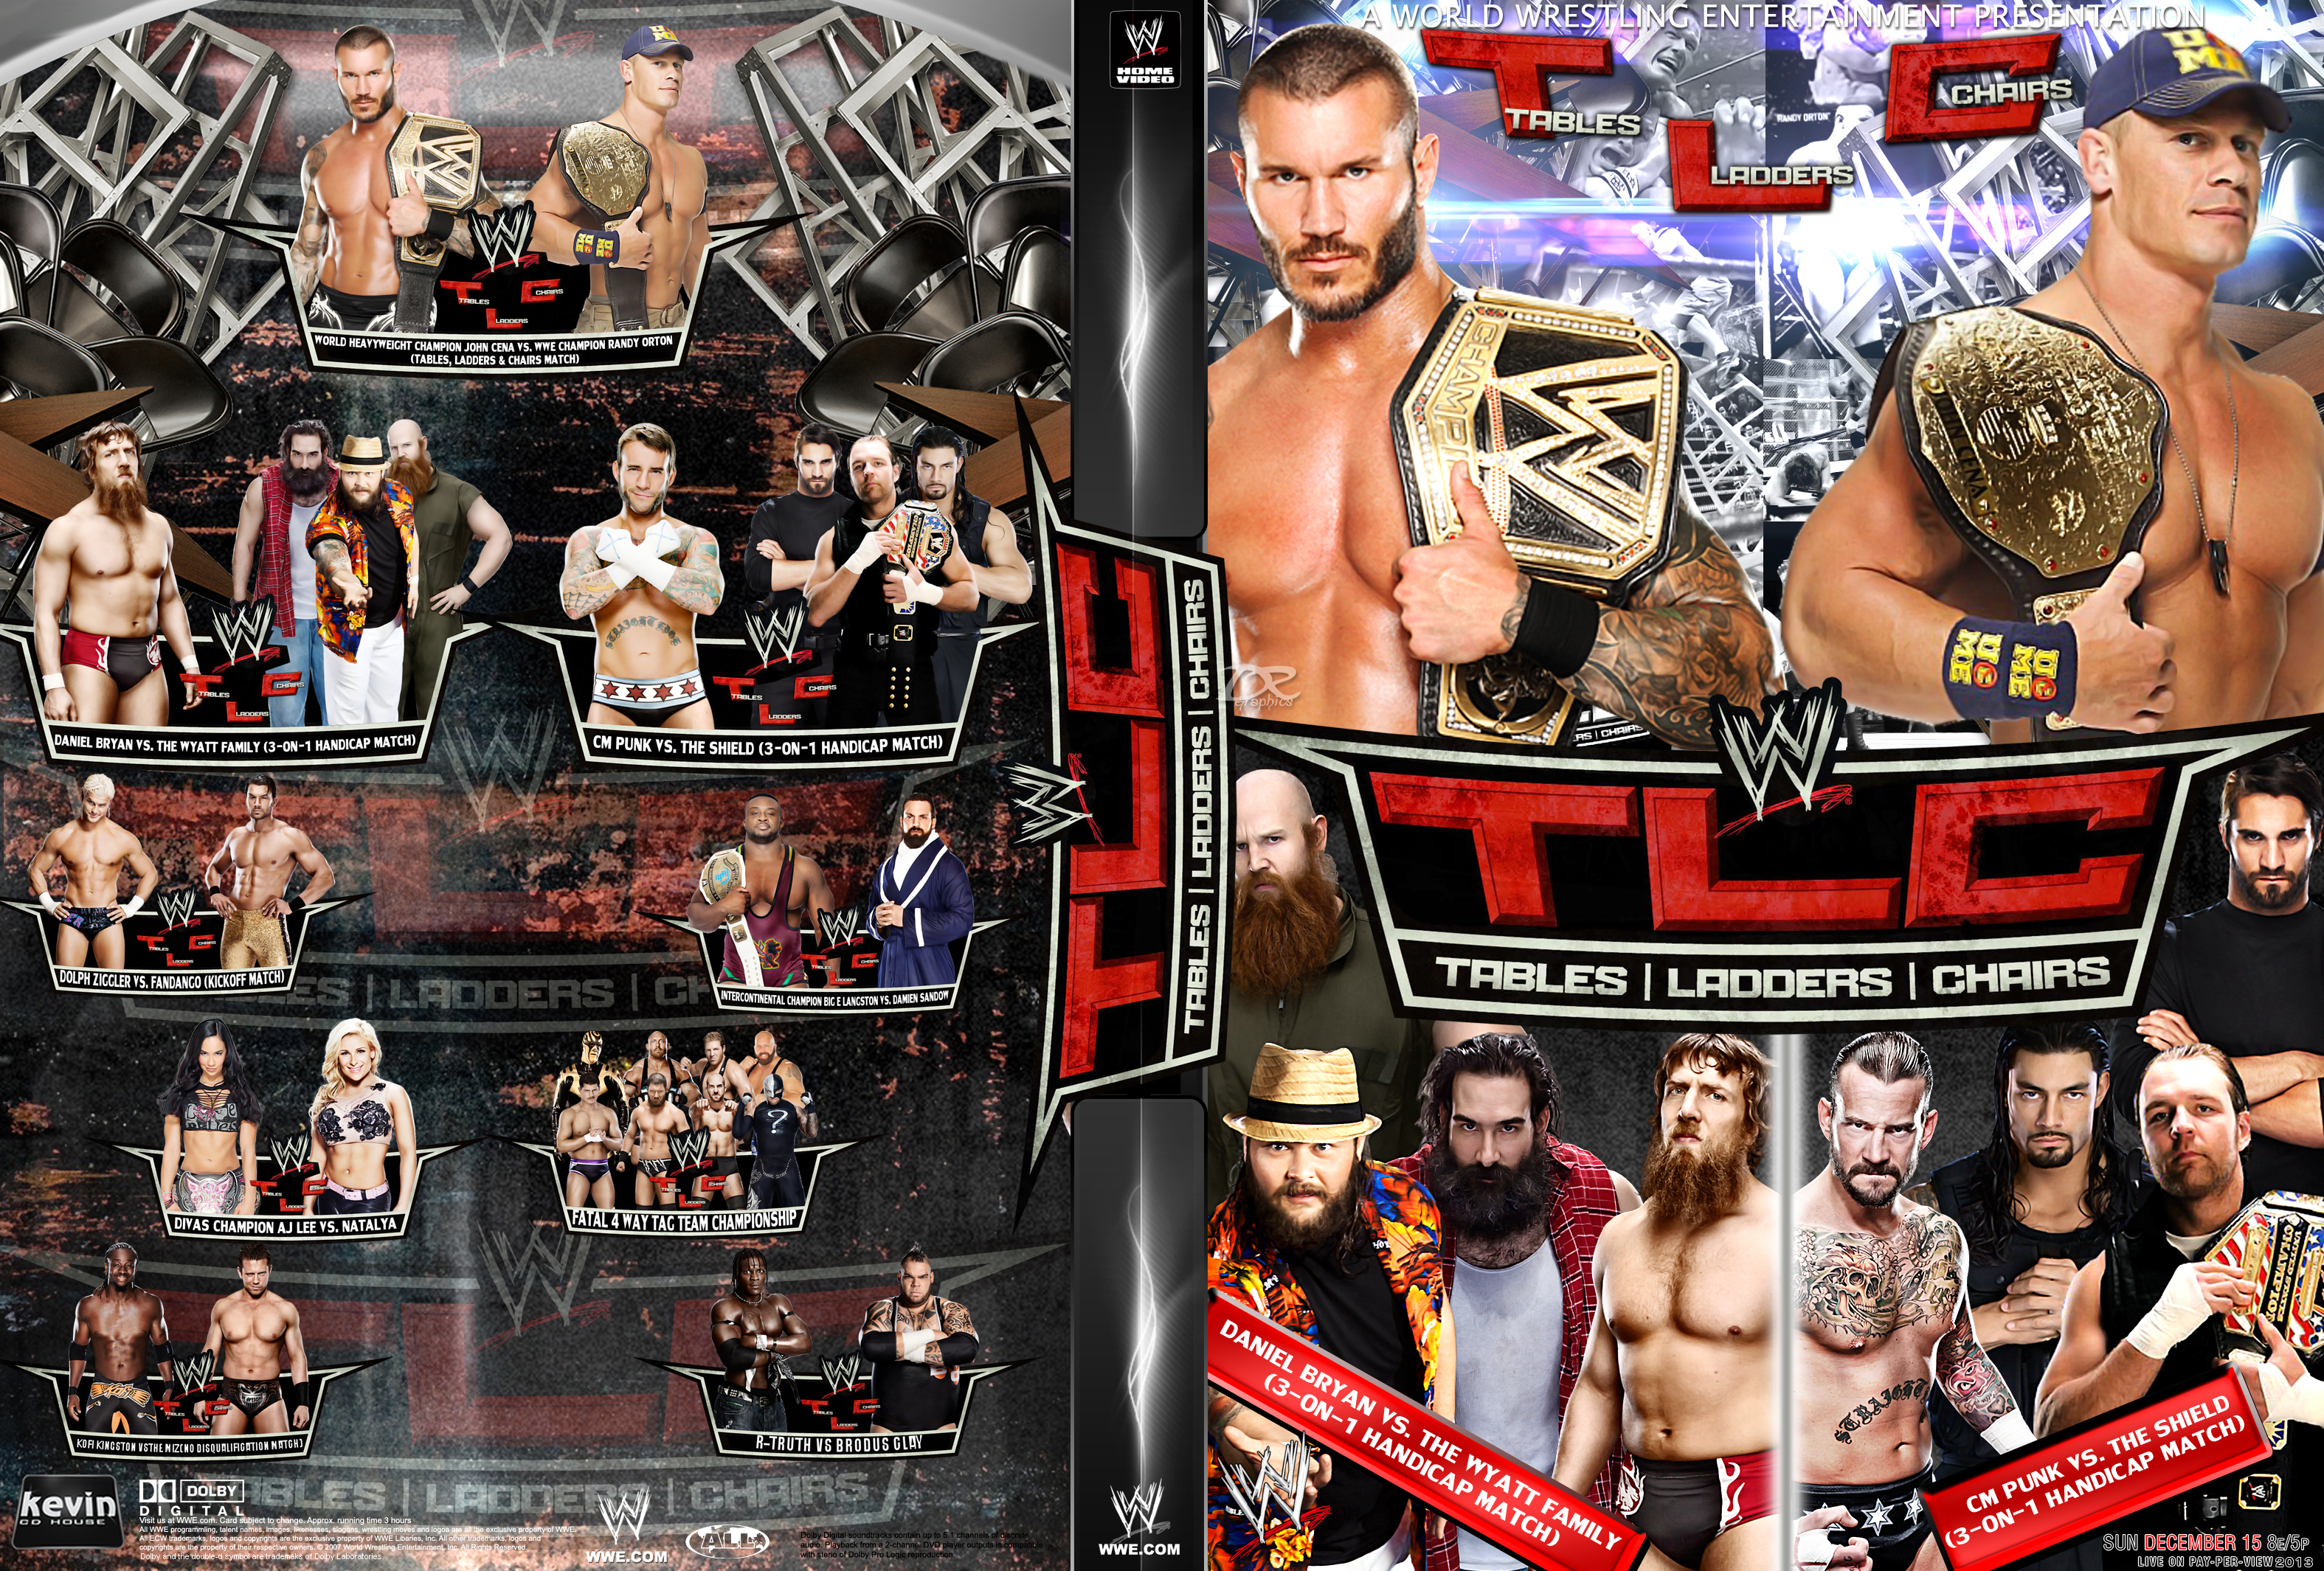 Wwe tables ladders and chairs 2013 poster -  Wwe Tlc Tables Ladders And Chairs 2013 Dvd Cover By Dinesh Musiclover